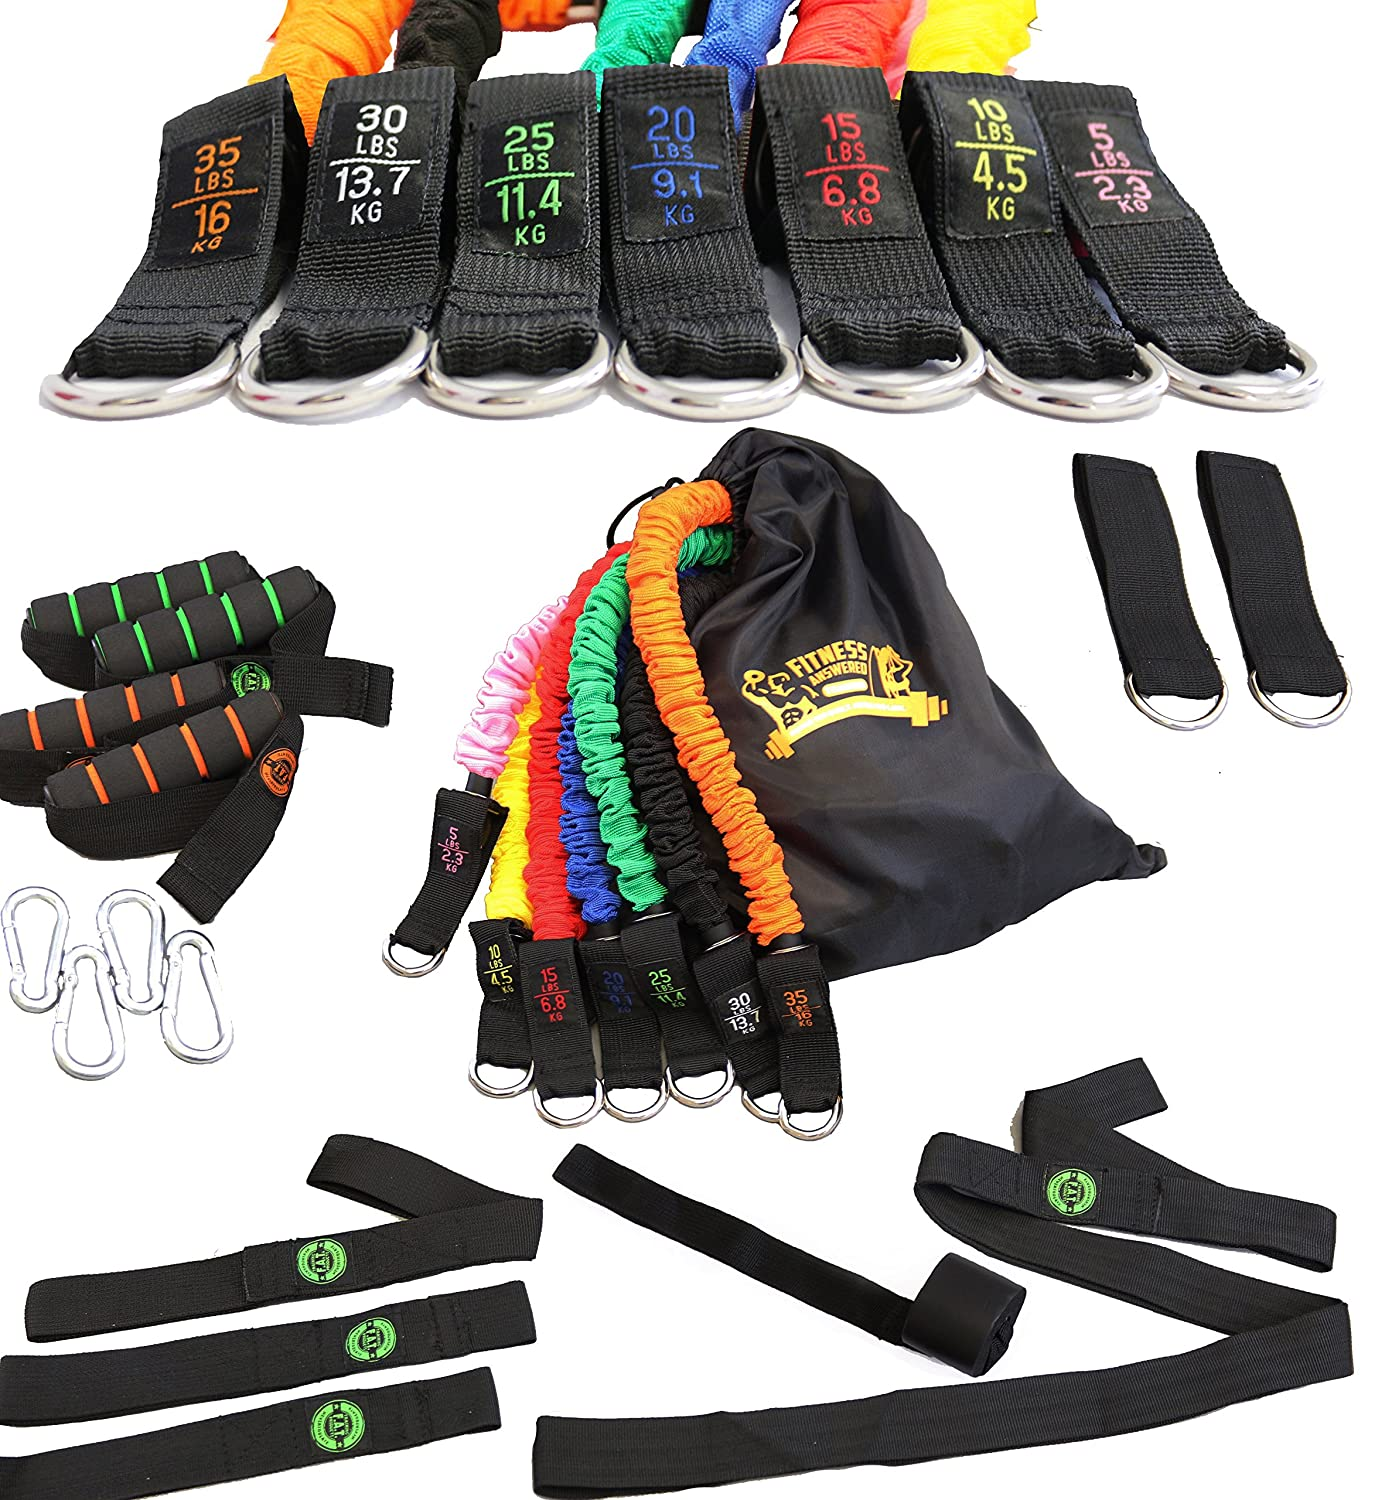 Christmas Gift Guide - Resistance Bands Fitness